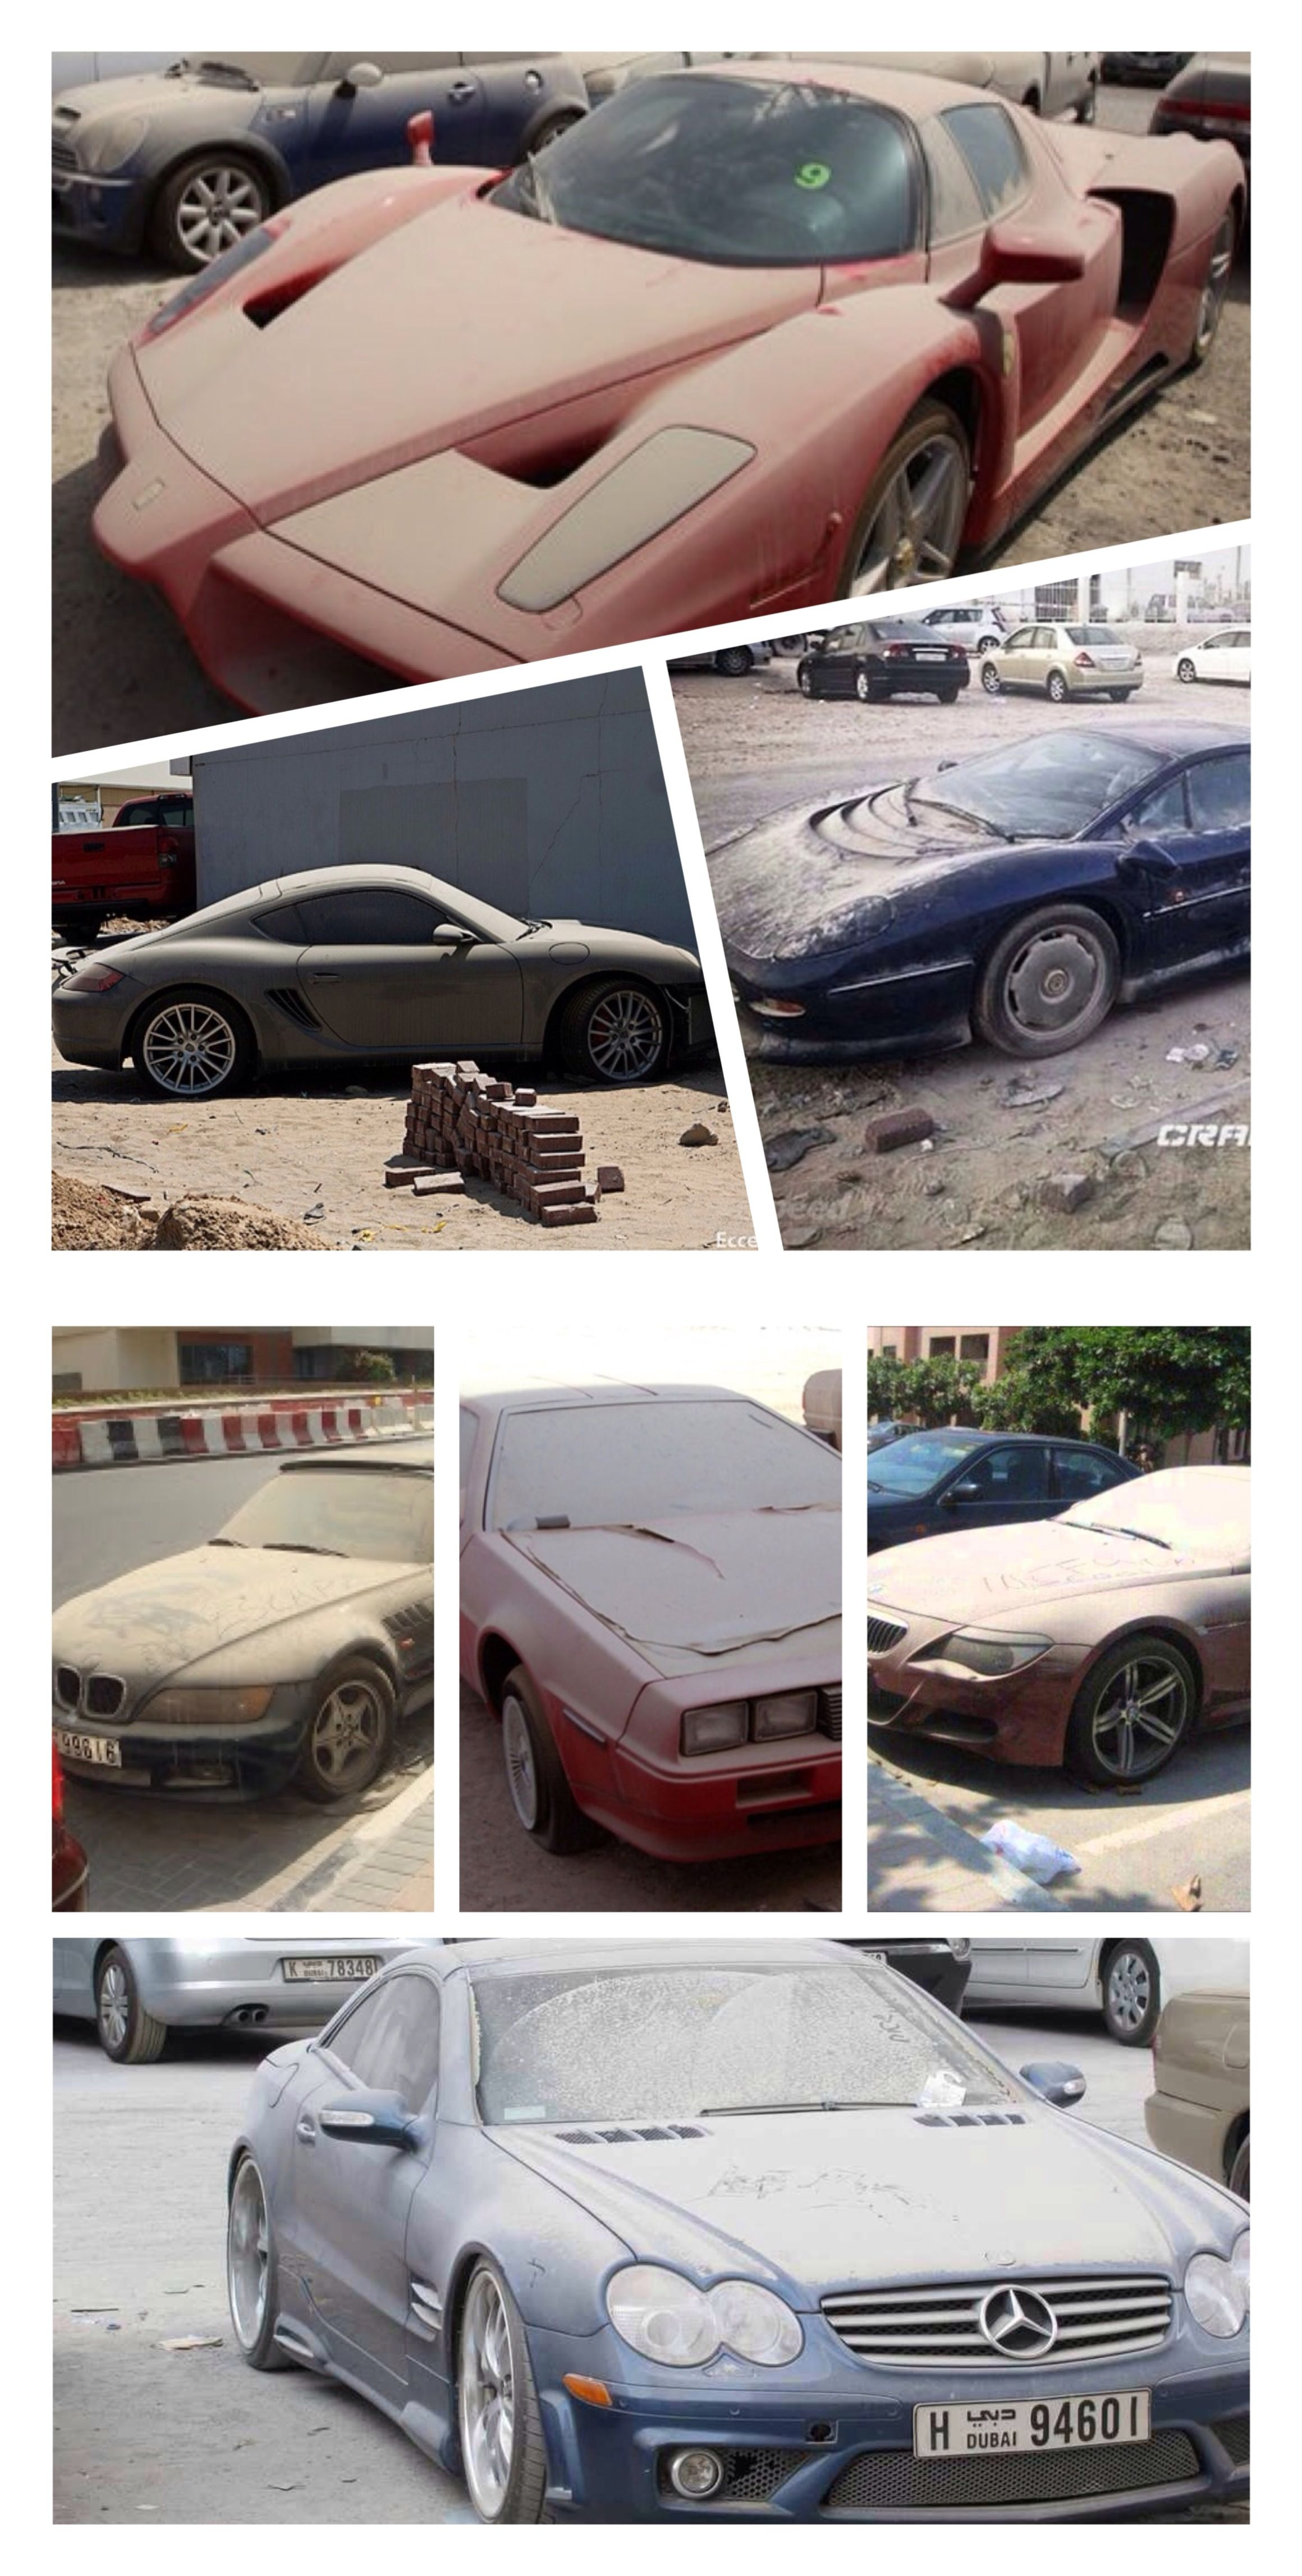 Dubai abandoned luxury cars never credit for what you can t pay 2009 financial